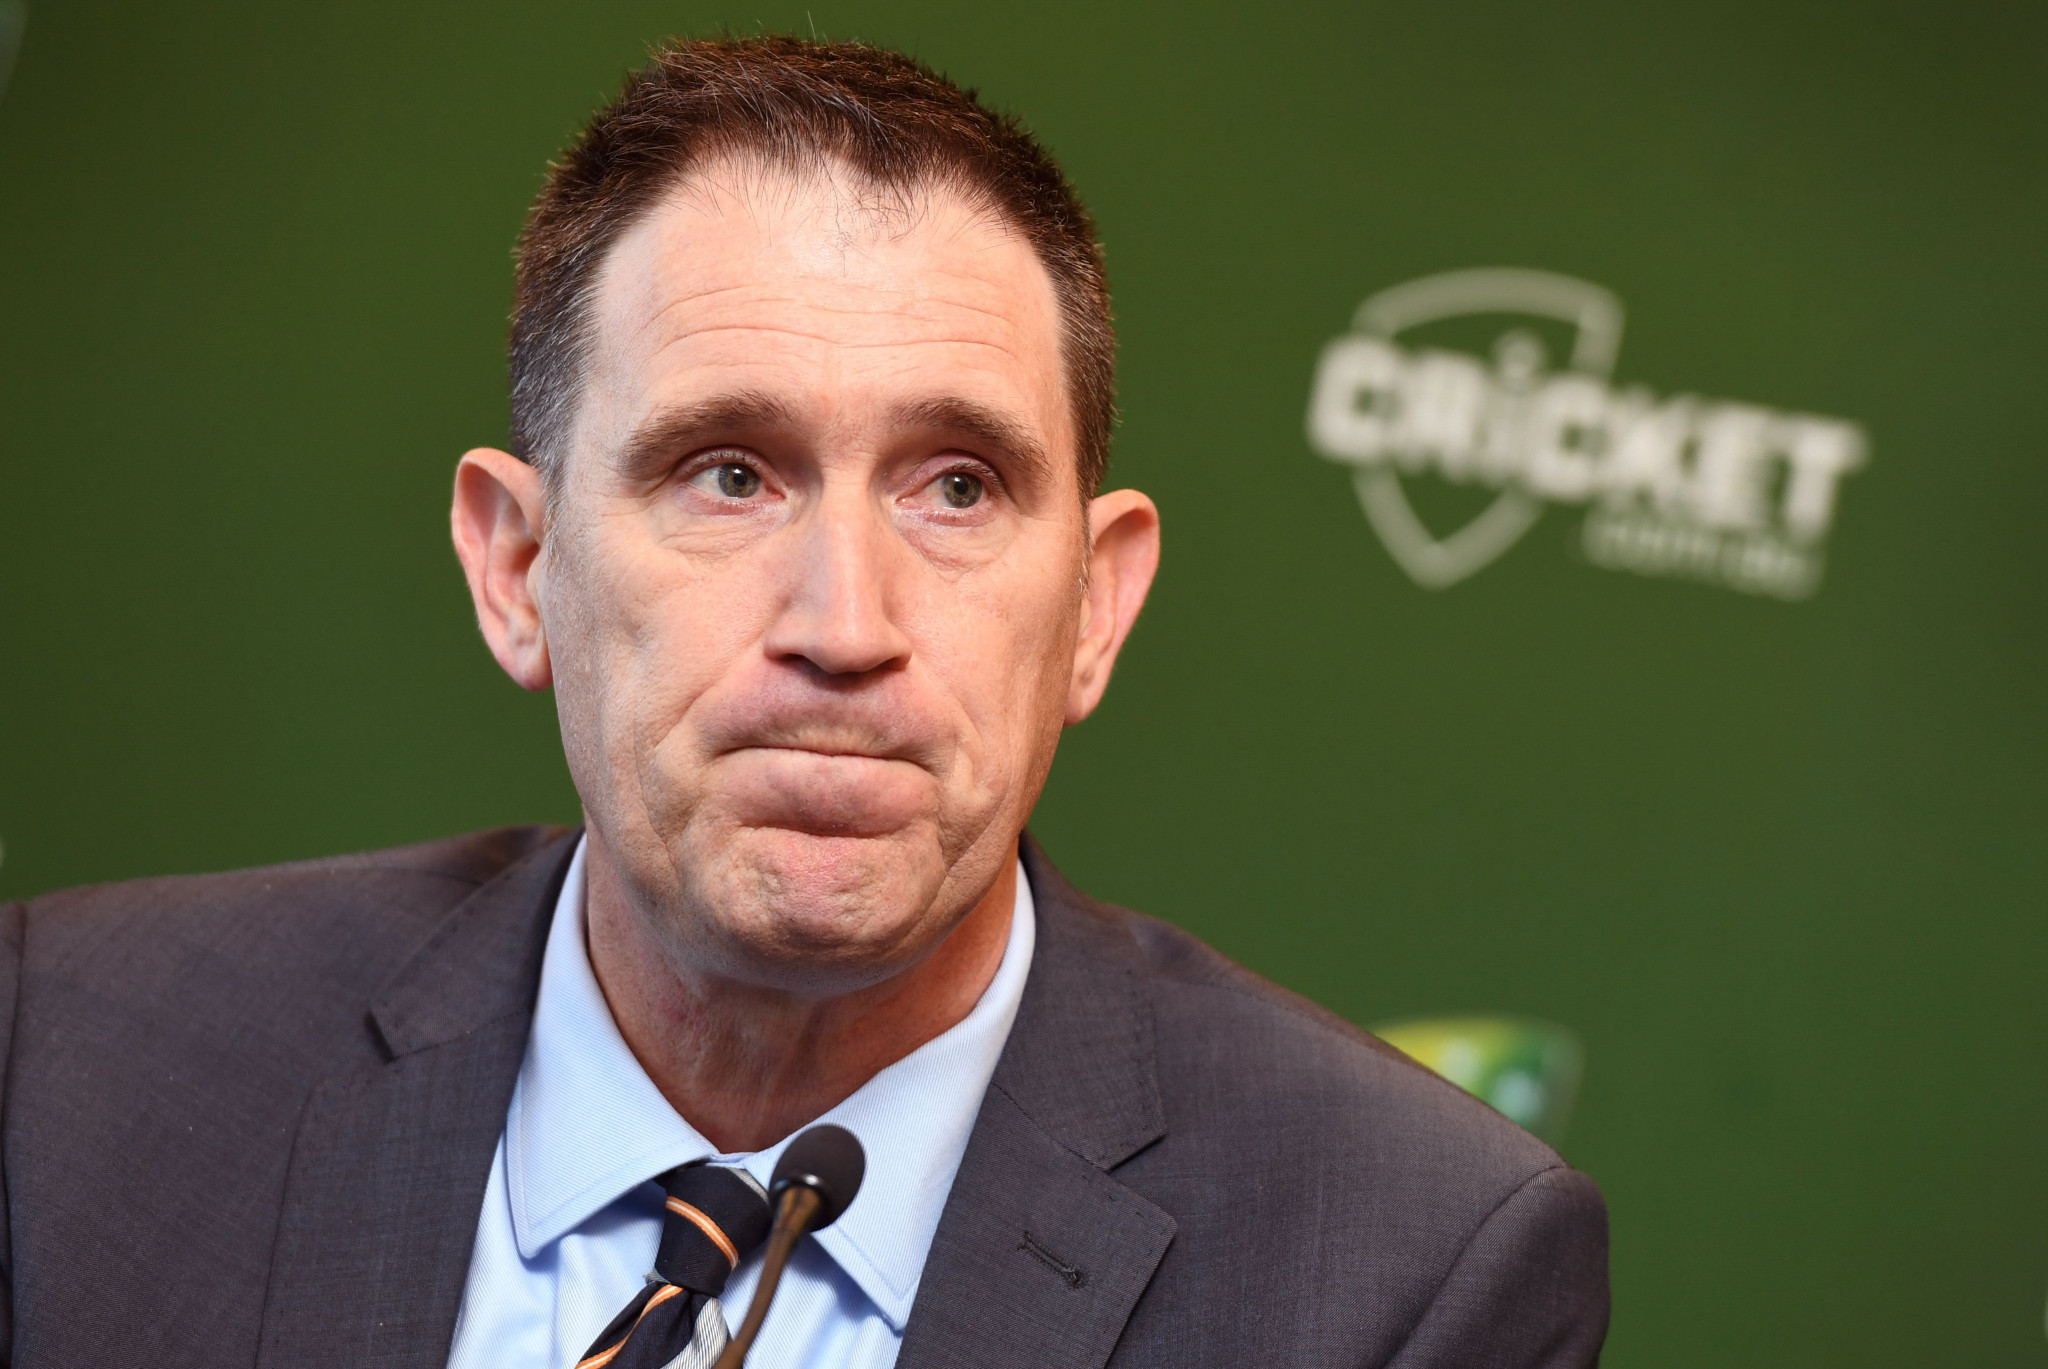 James Sutherland has announced his resignation as Cricket Australia chief executive ©Getty Images